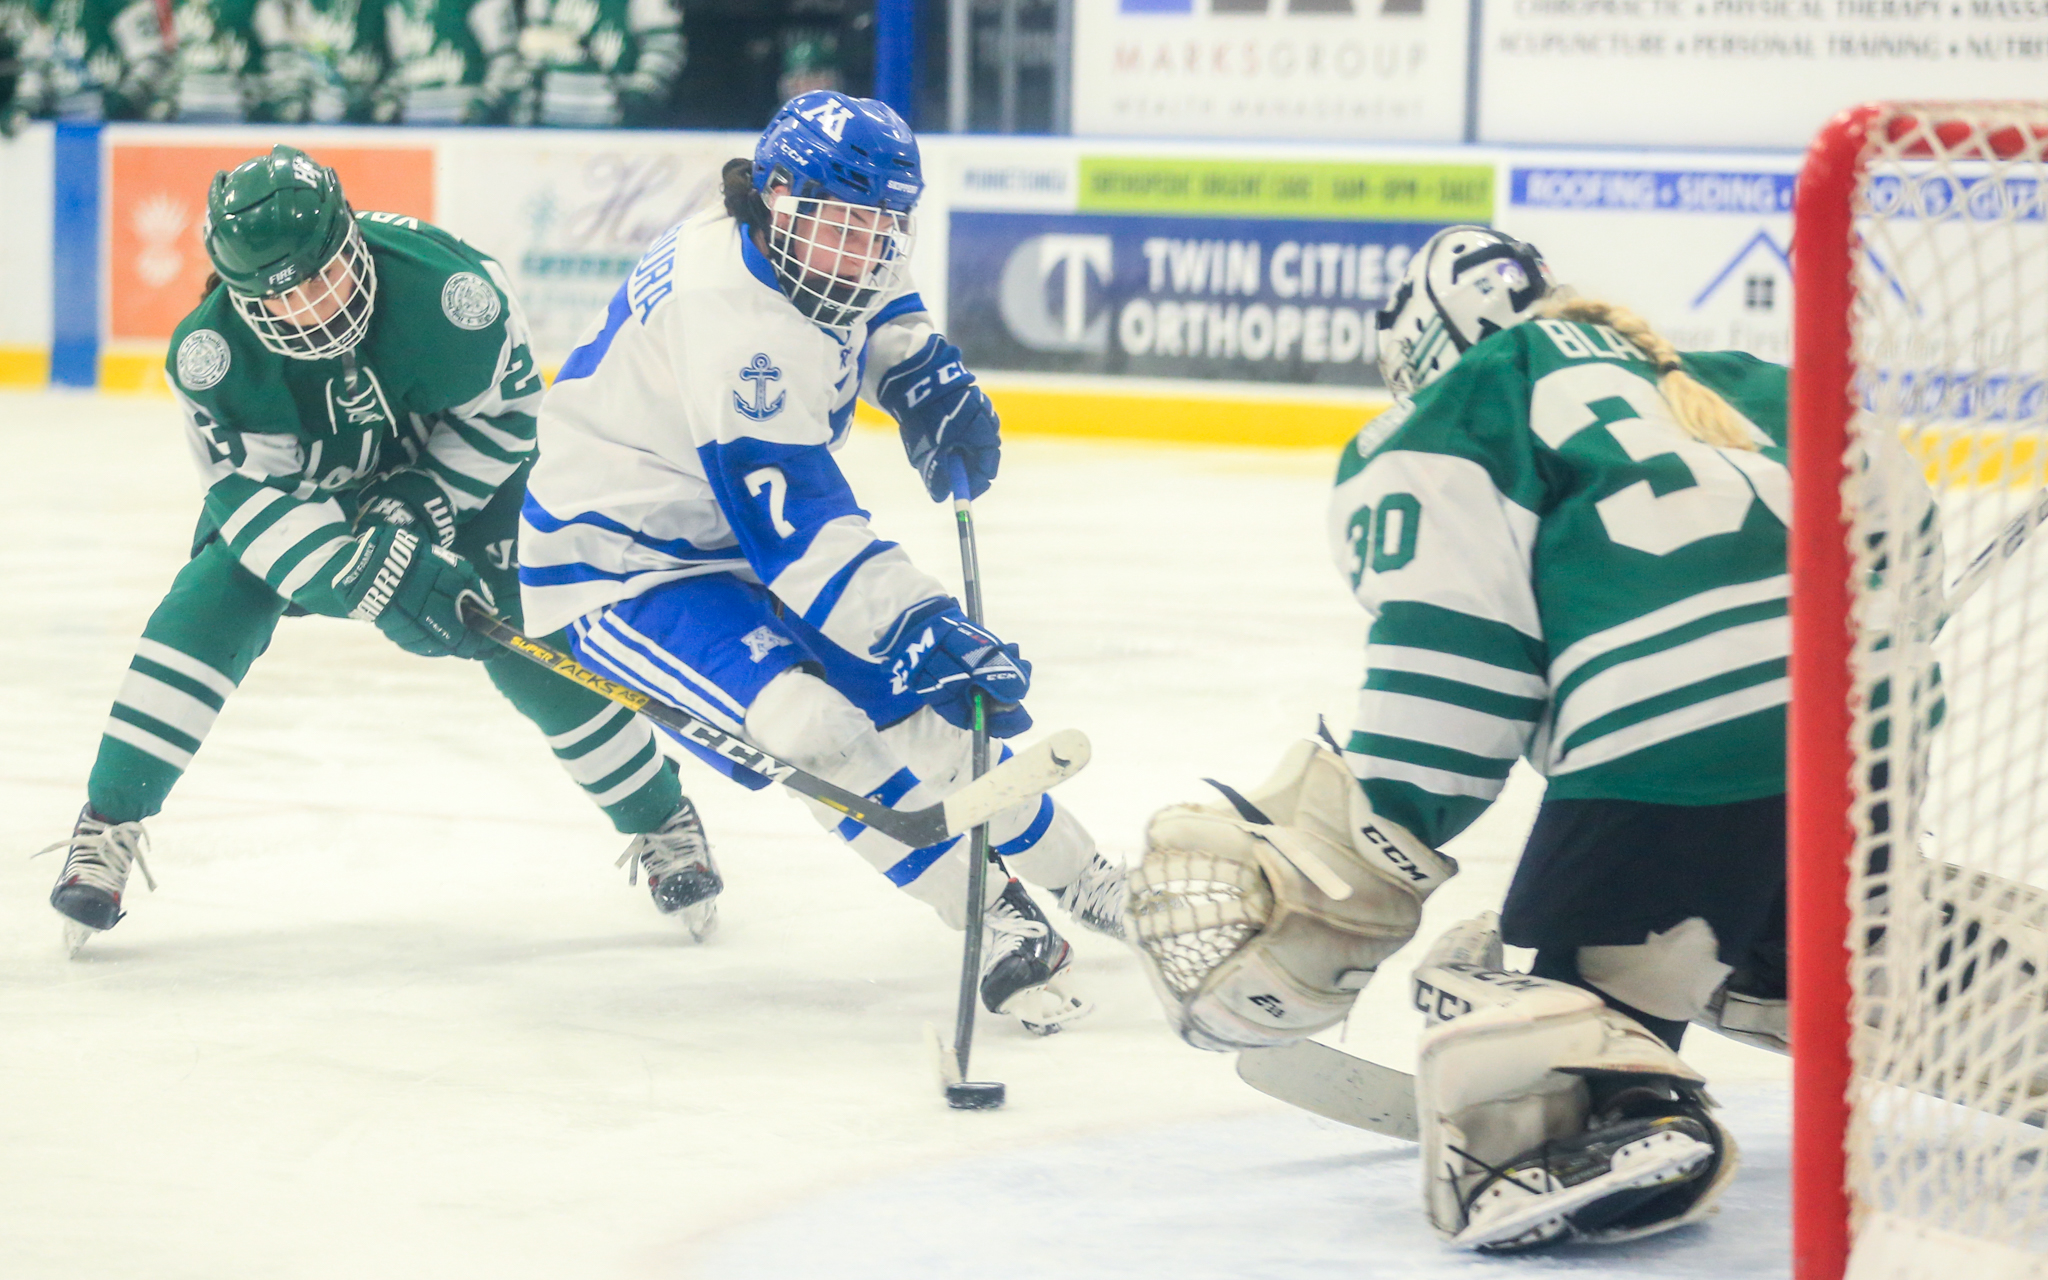 Minnetonka's Grace Sadura (7) gets off a shot for a third period goal against Holy Family Catholic Saturday evening. Sadura added an assist in the Skippers' 4-1 victory over the fire. Photo by Jeff Lawler, SportsEngine